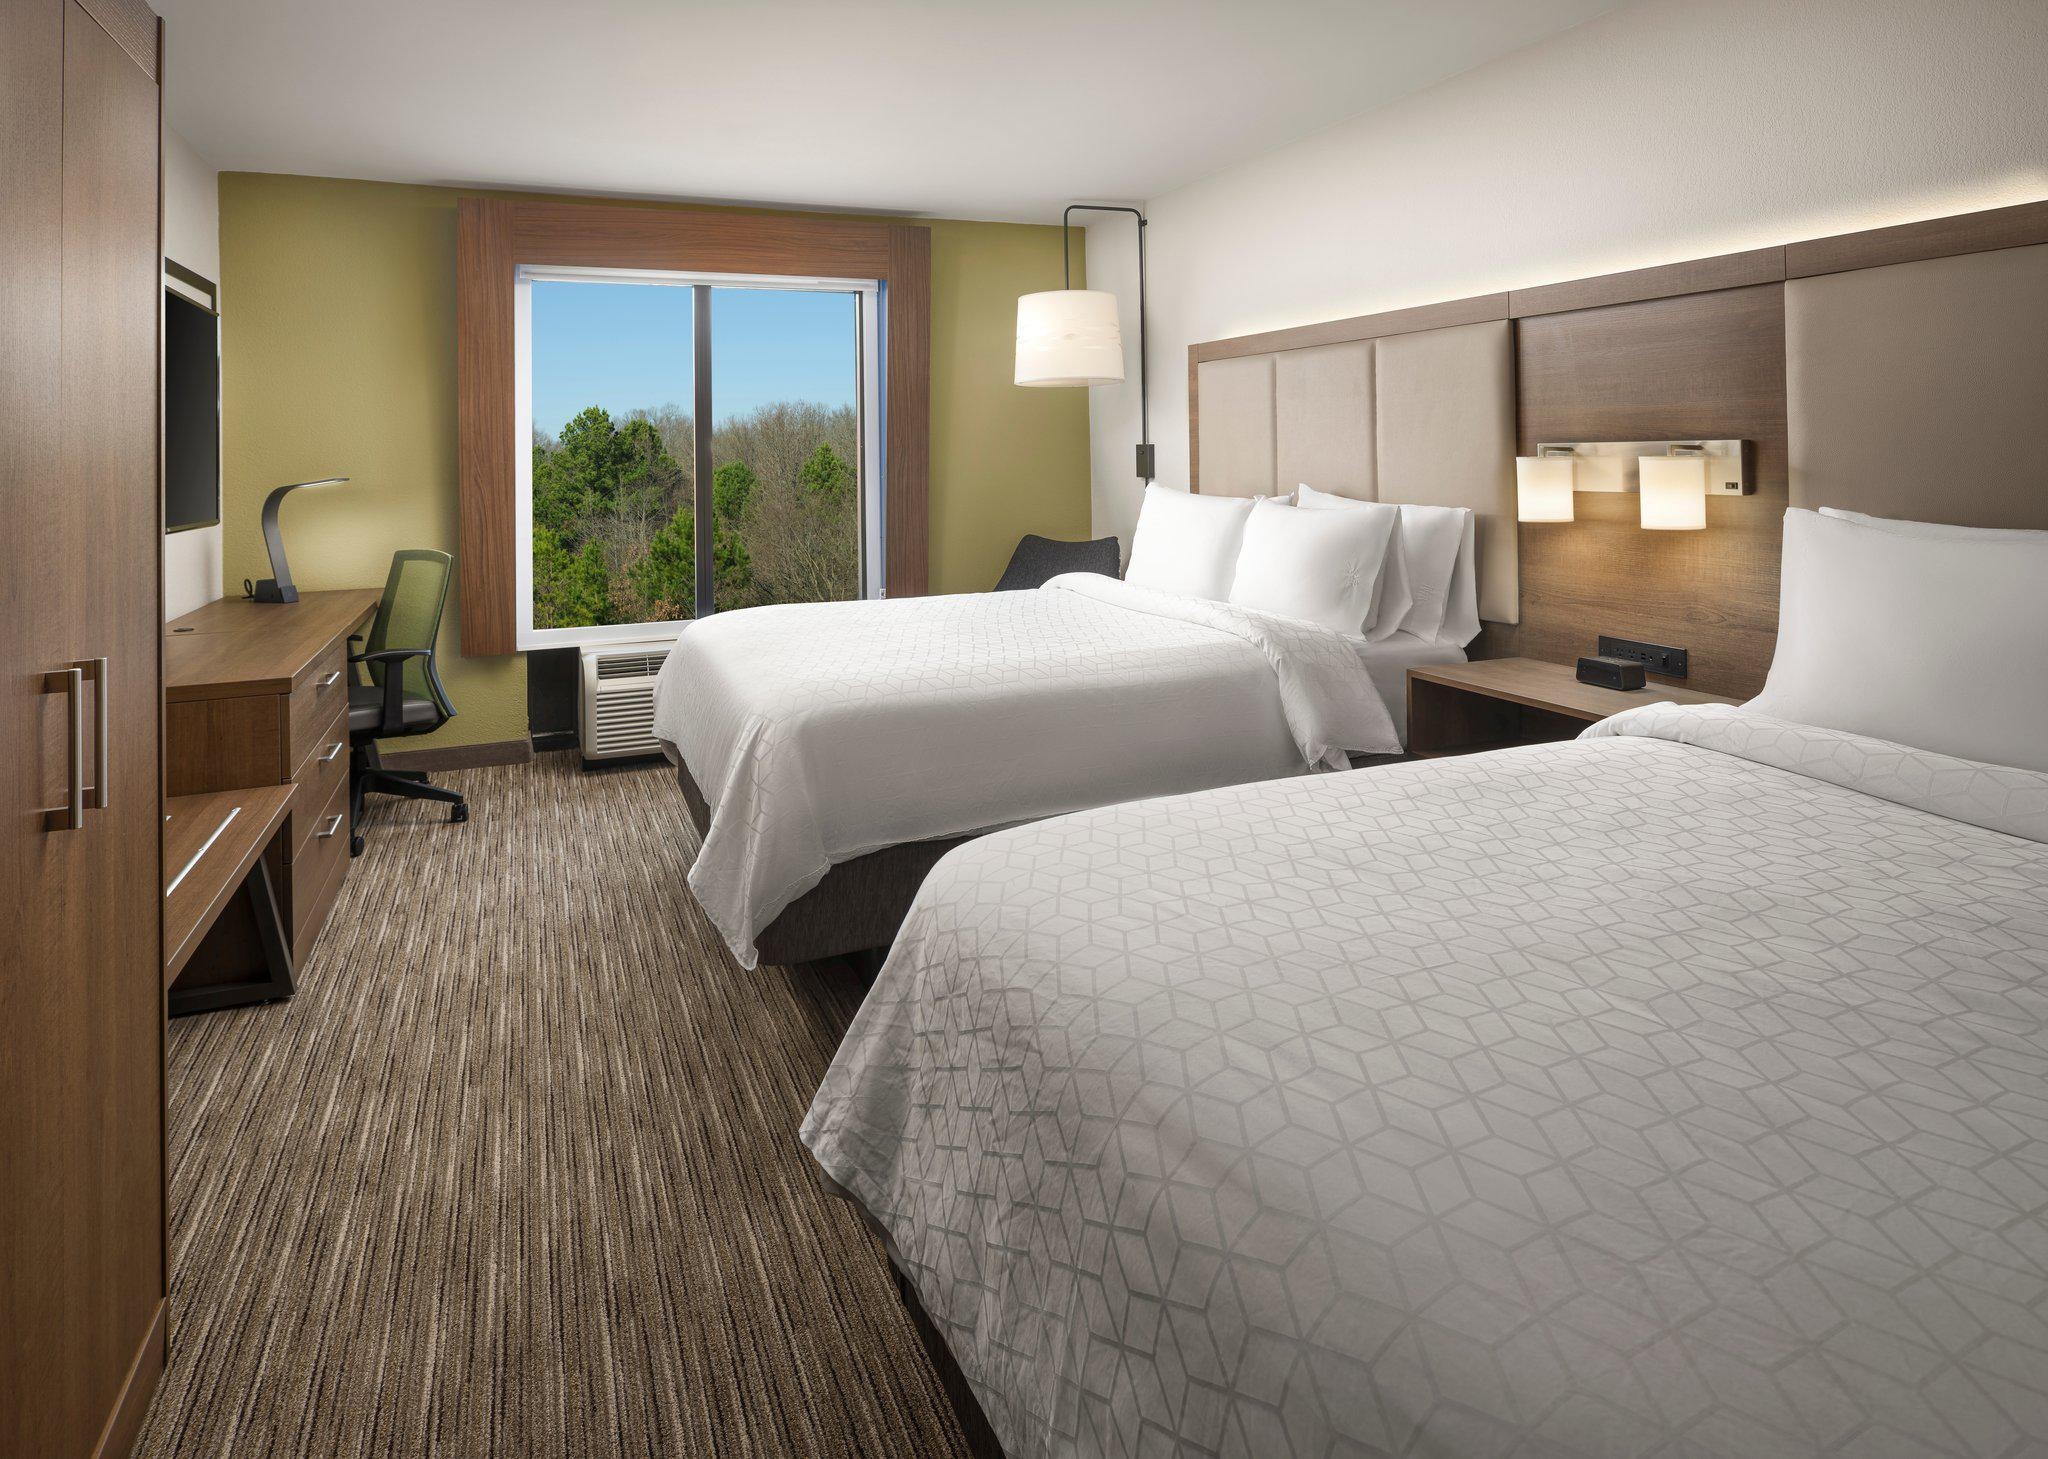 Holiday Inn Express & Suites Olive Branch Coupons near me ...